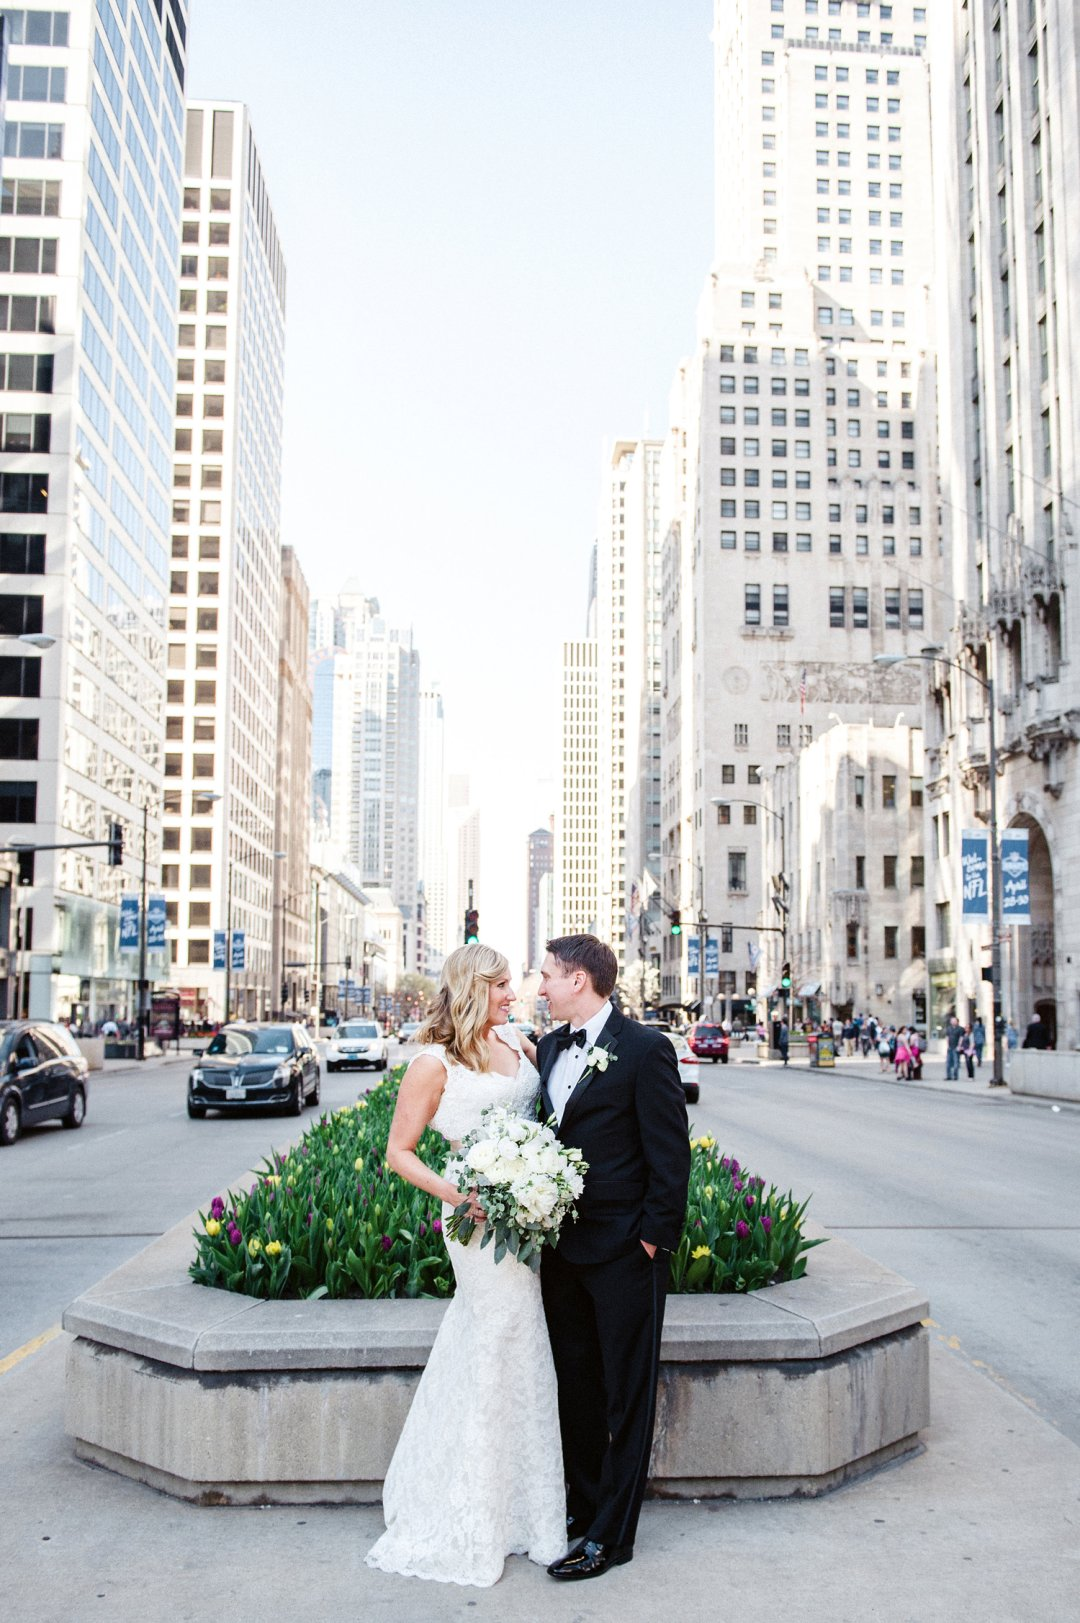 Bride and groom photo together in middle of street